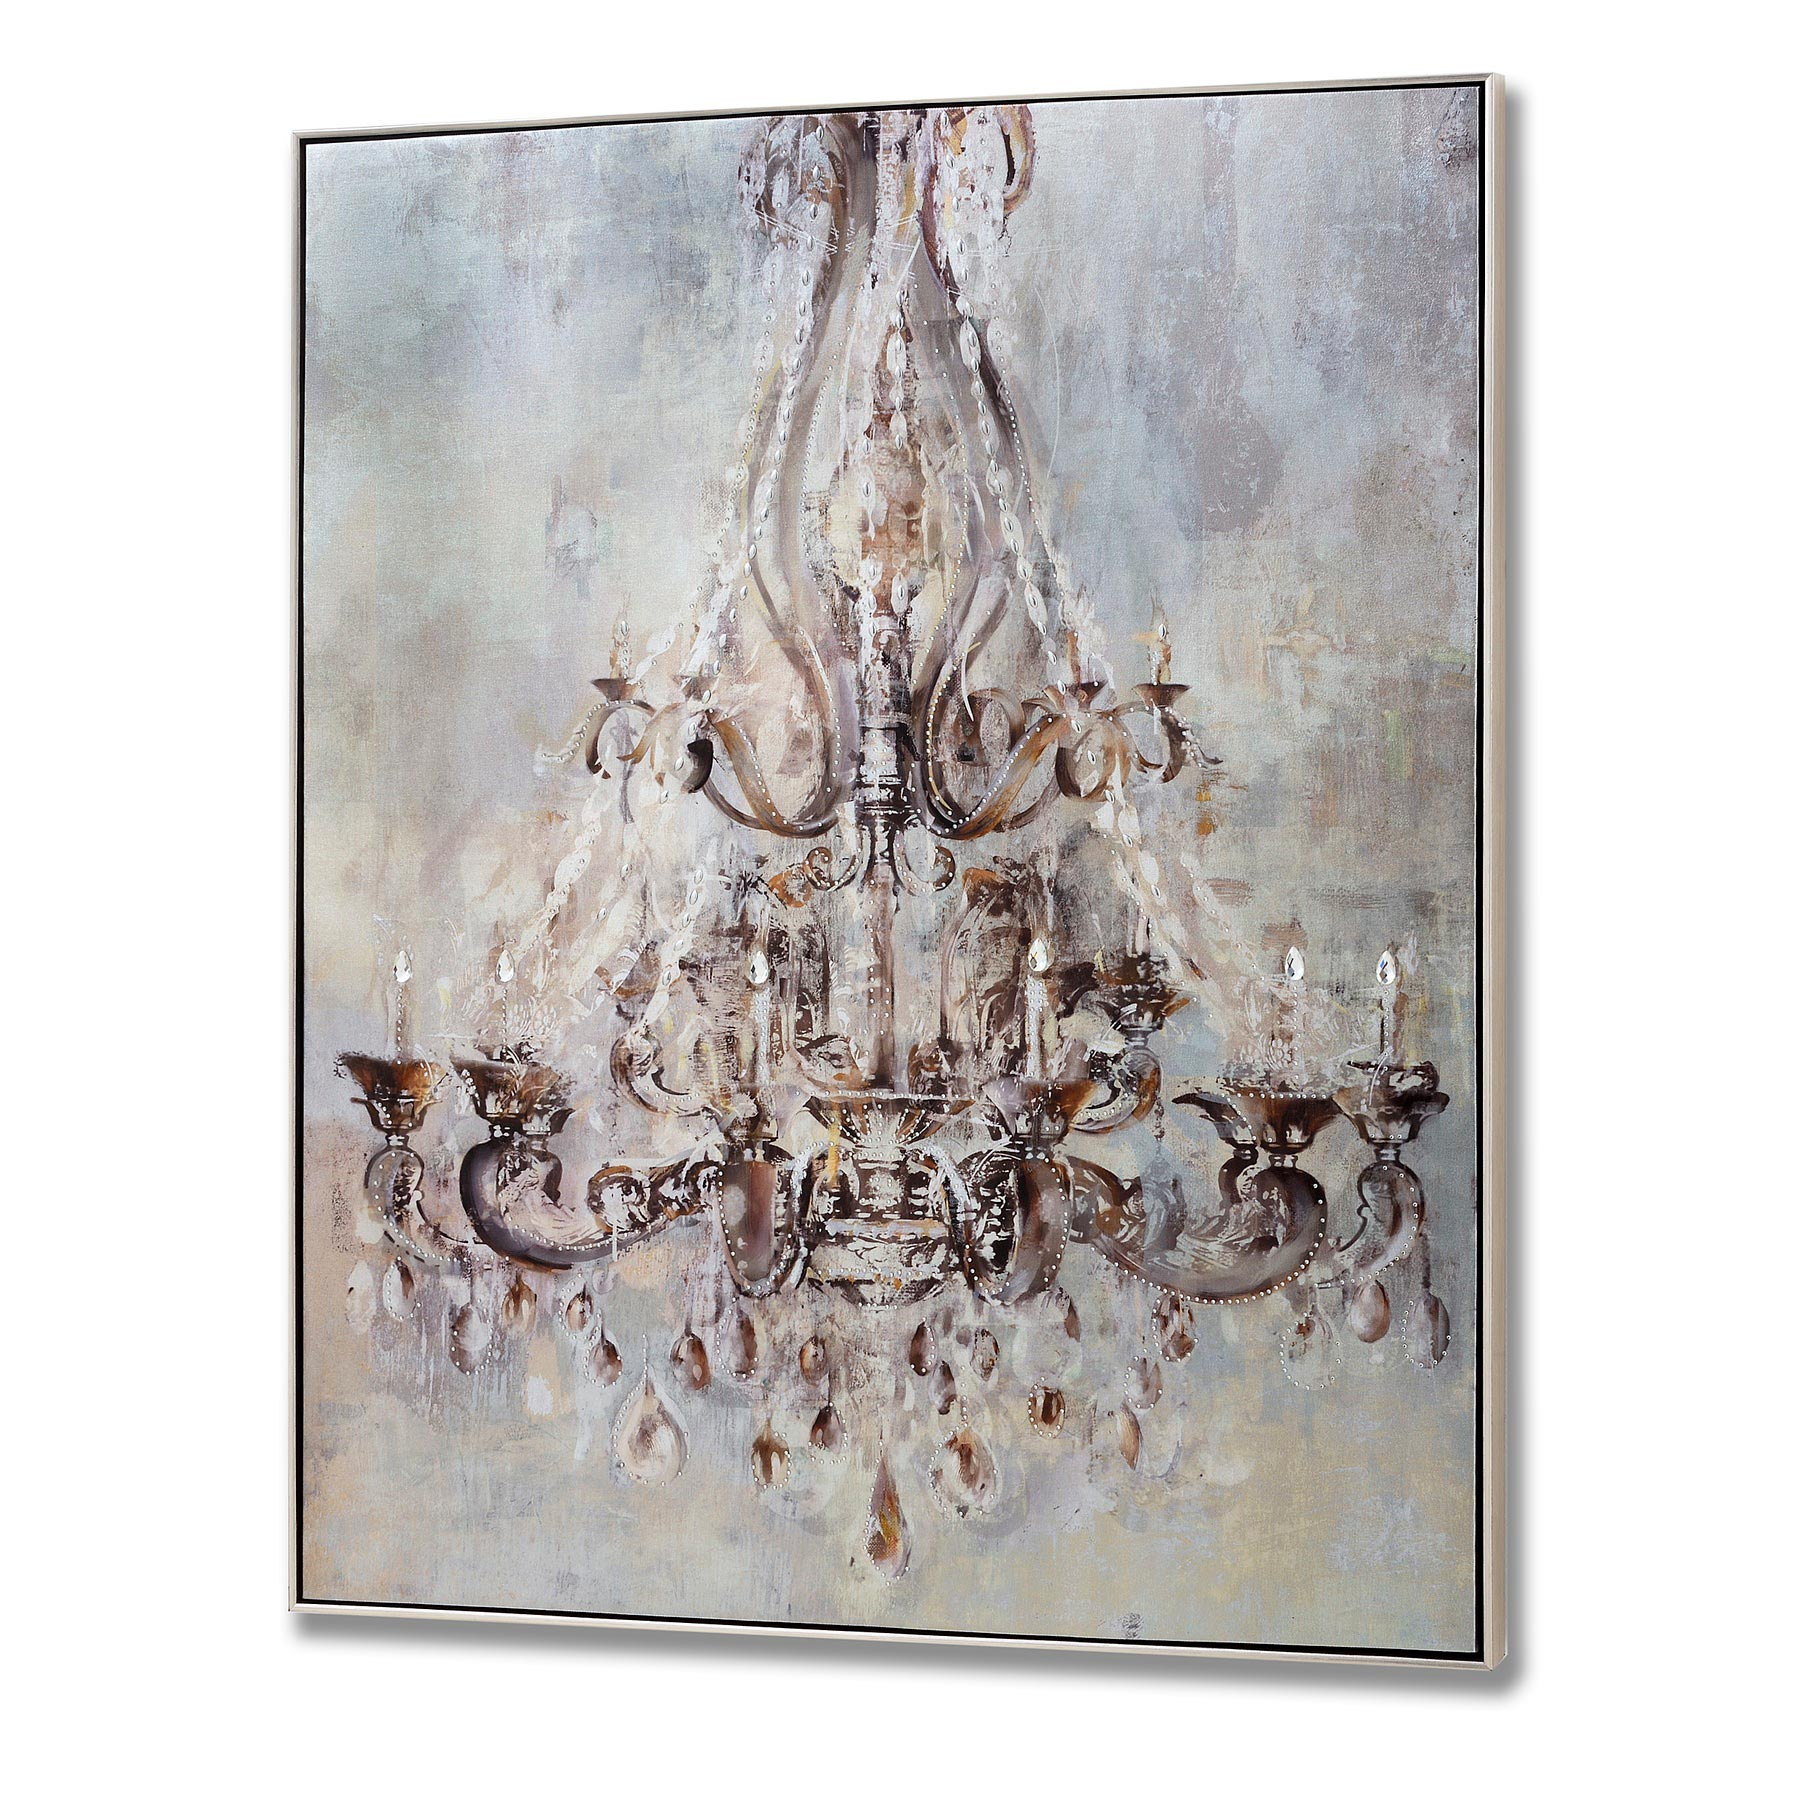 Metal Sculptures And Art Wall Decor: Framed Metalic Chandelier Wall Art With Metal Studs From